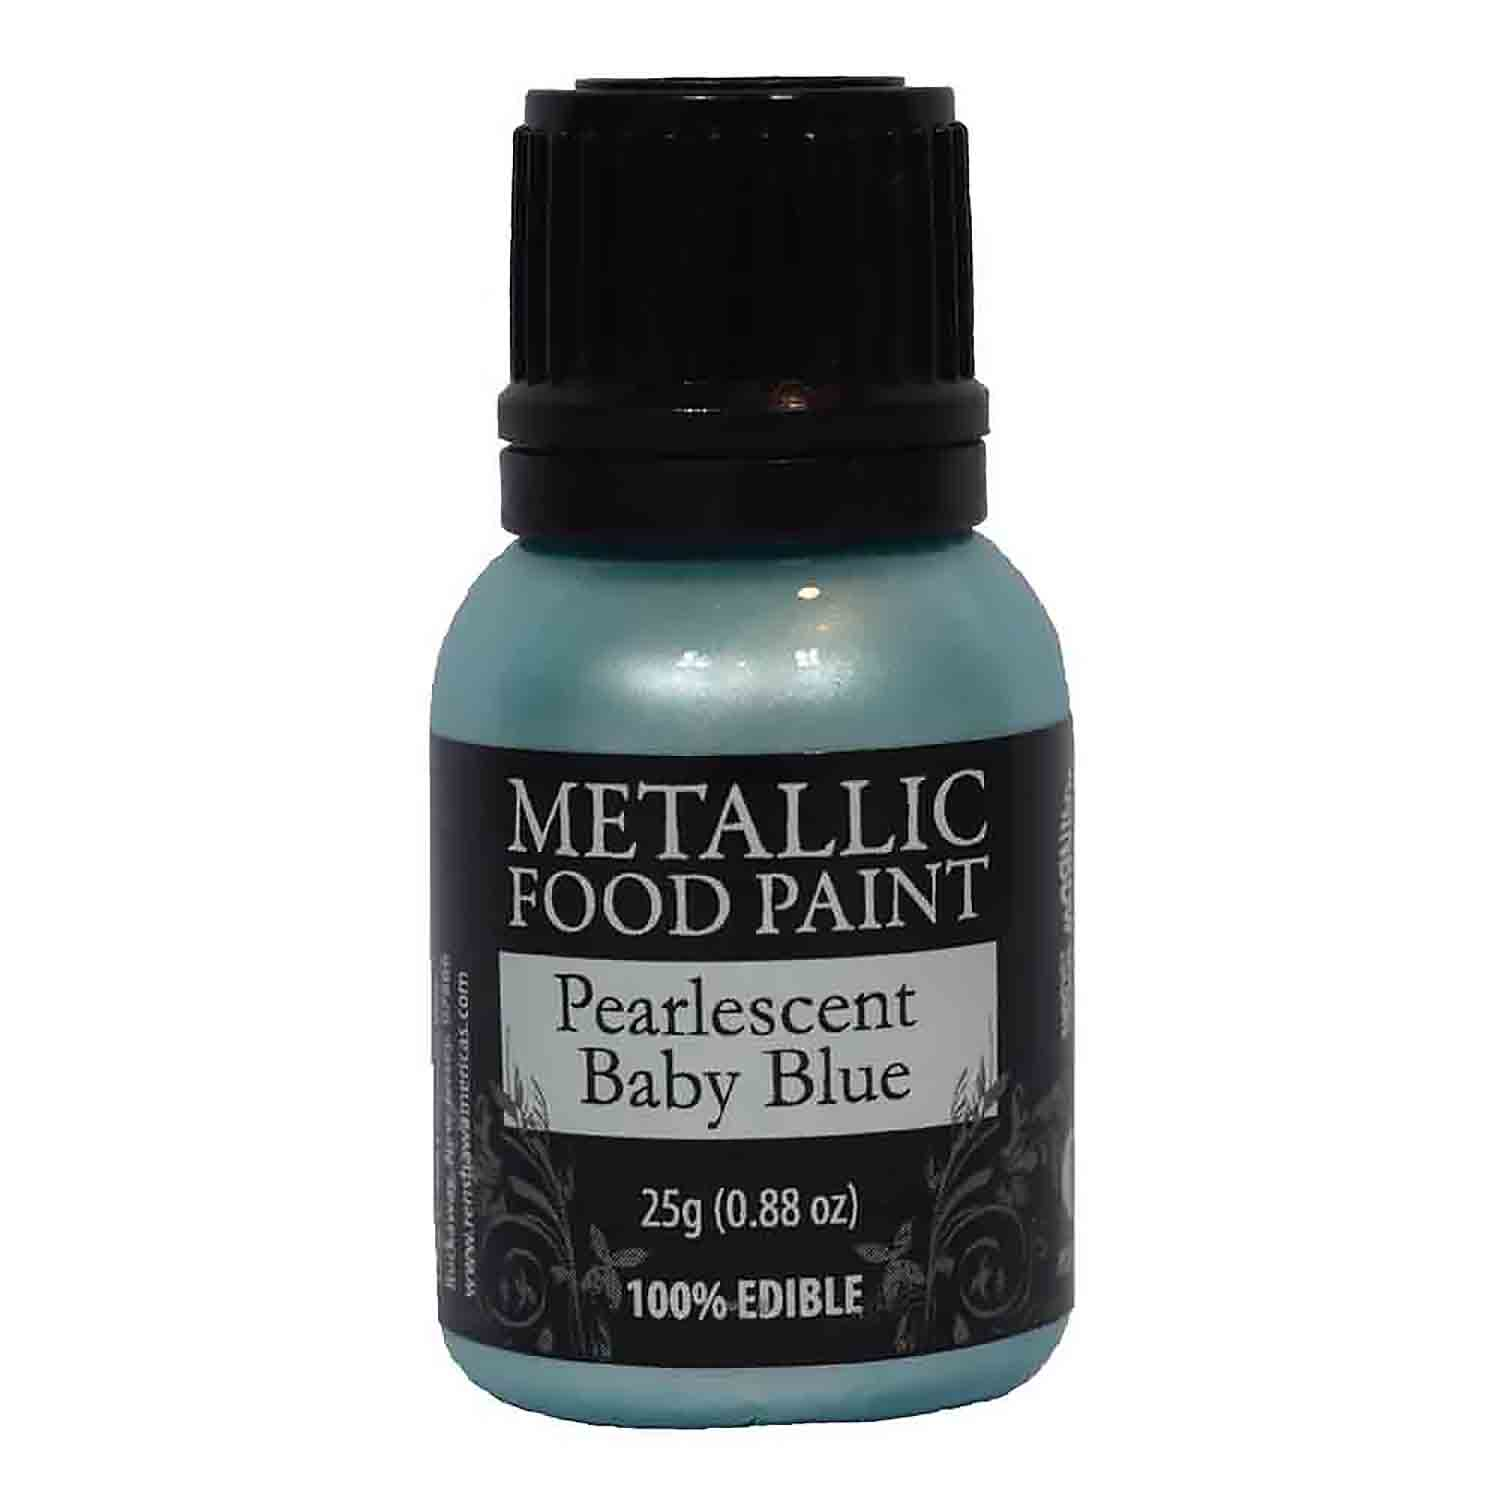 Pearlescent Baby Blue Metallic Food Paint